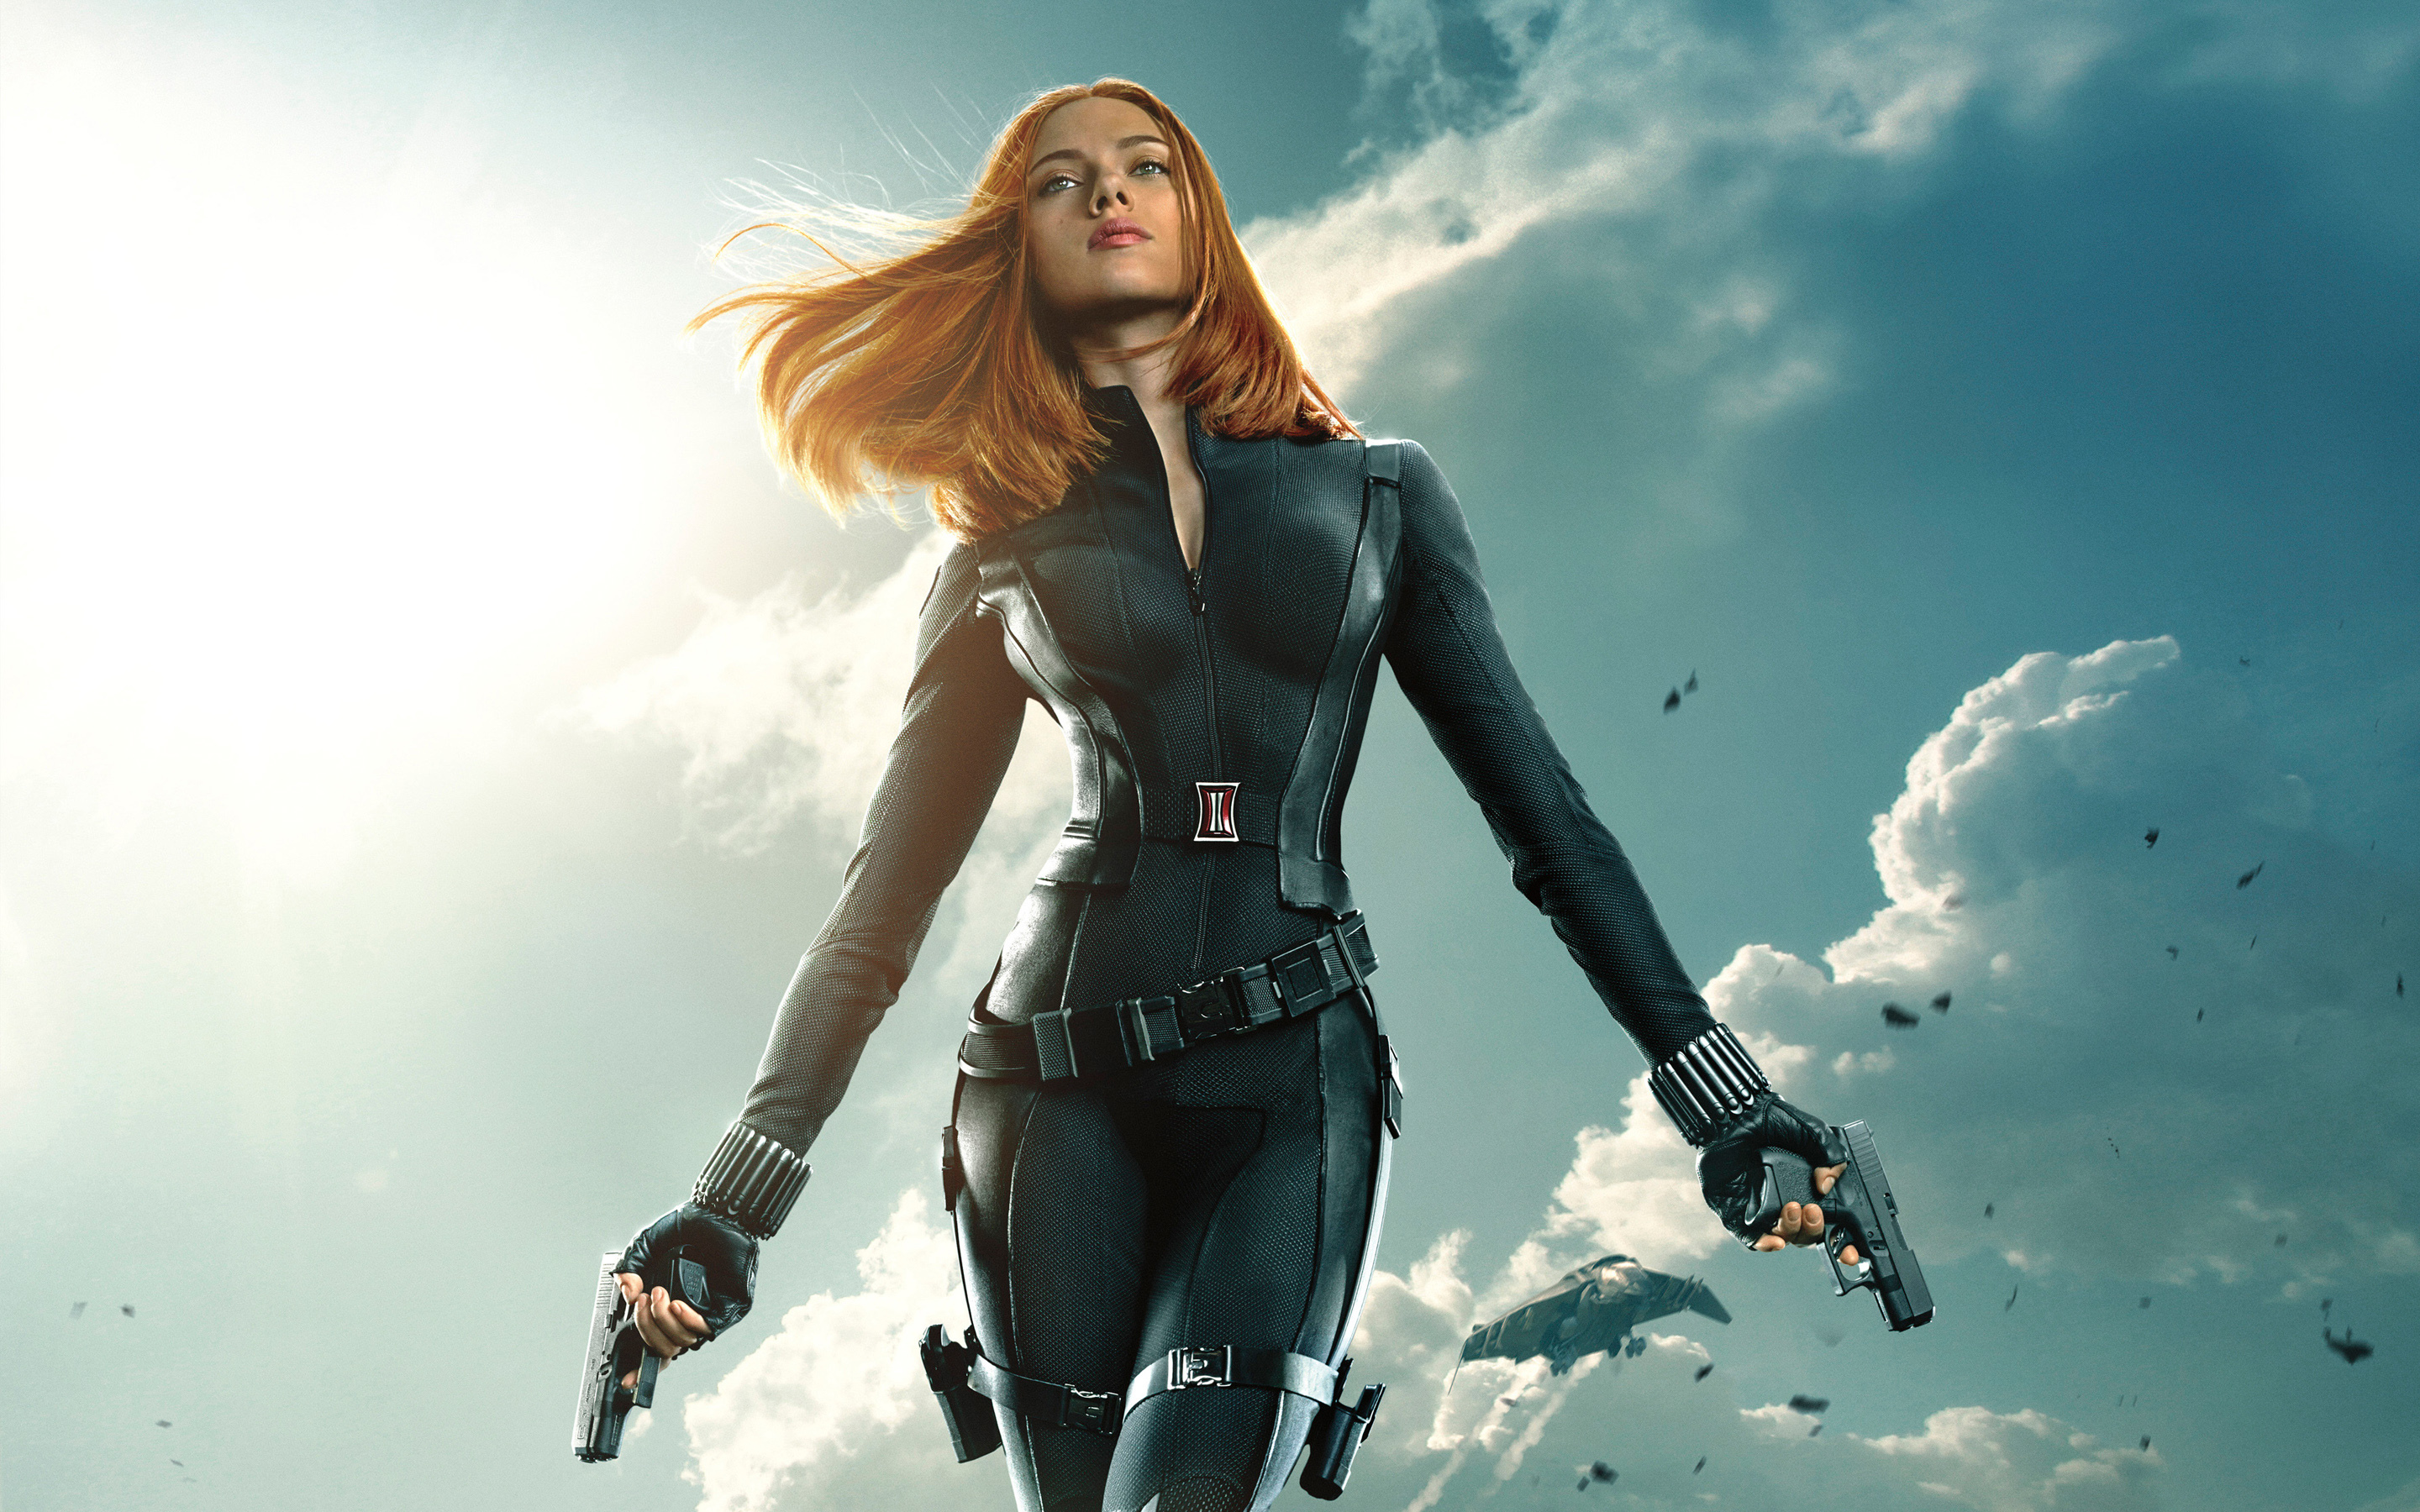 Marvel Legend Stan Lee Hints That A Black Widow Solo Movie